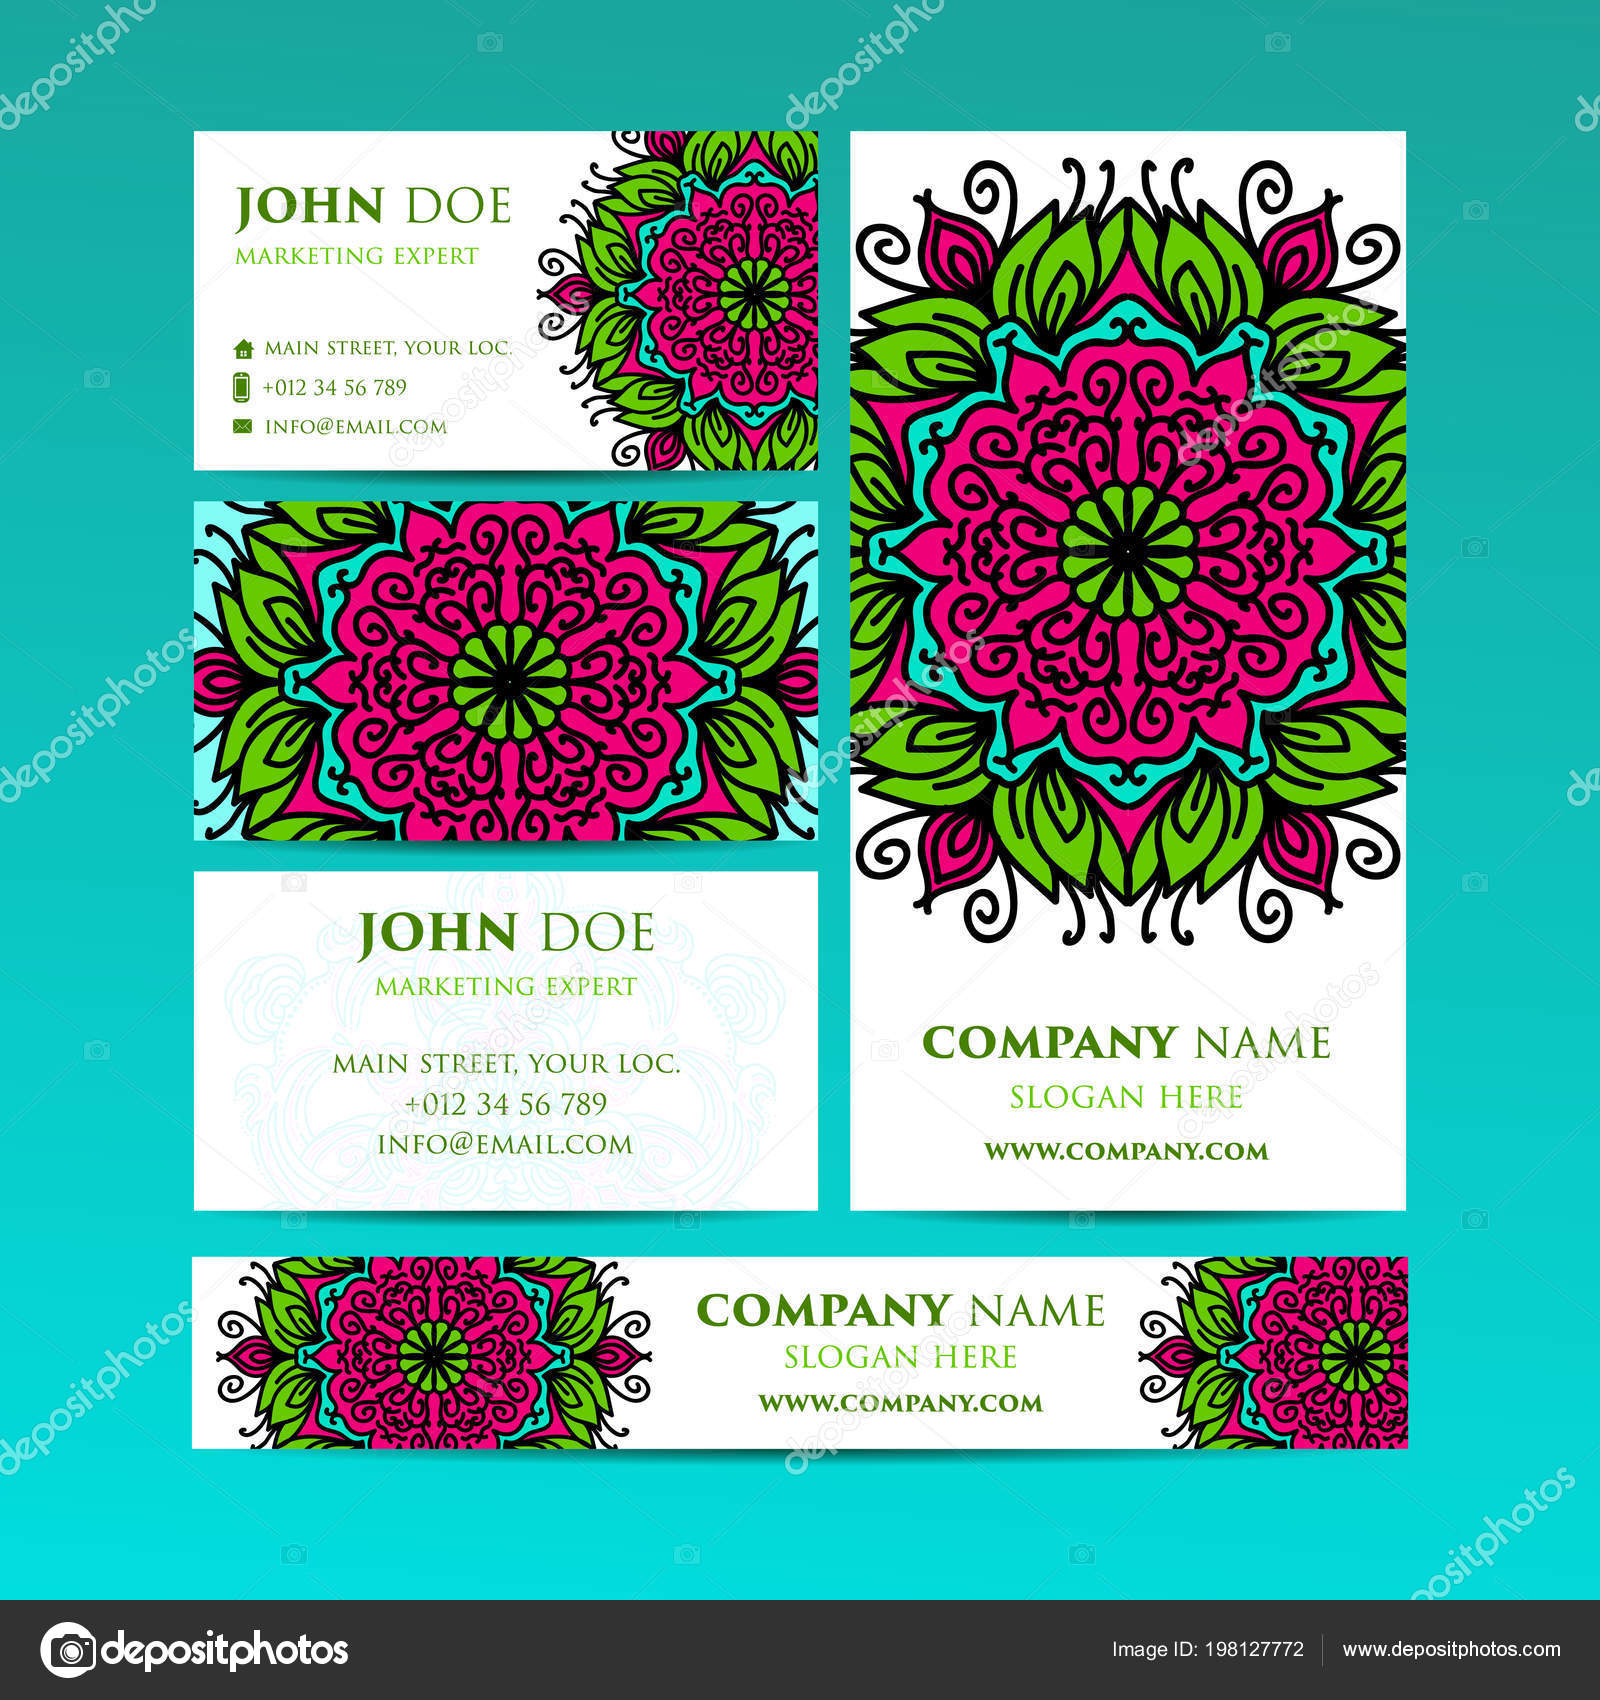 Big Templates Set Business Cards, Invitations And Banners Asian, Arabic